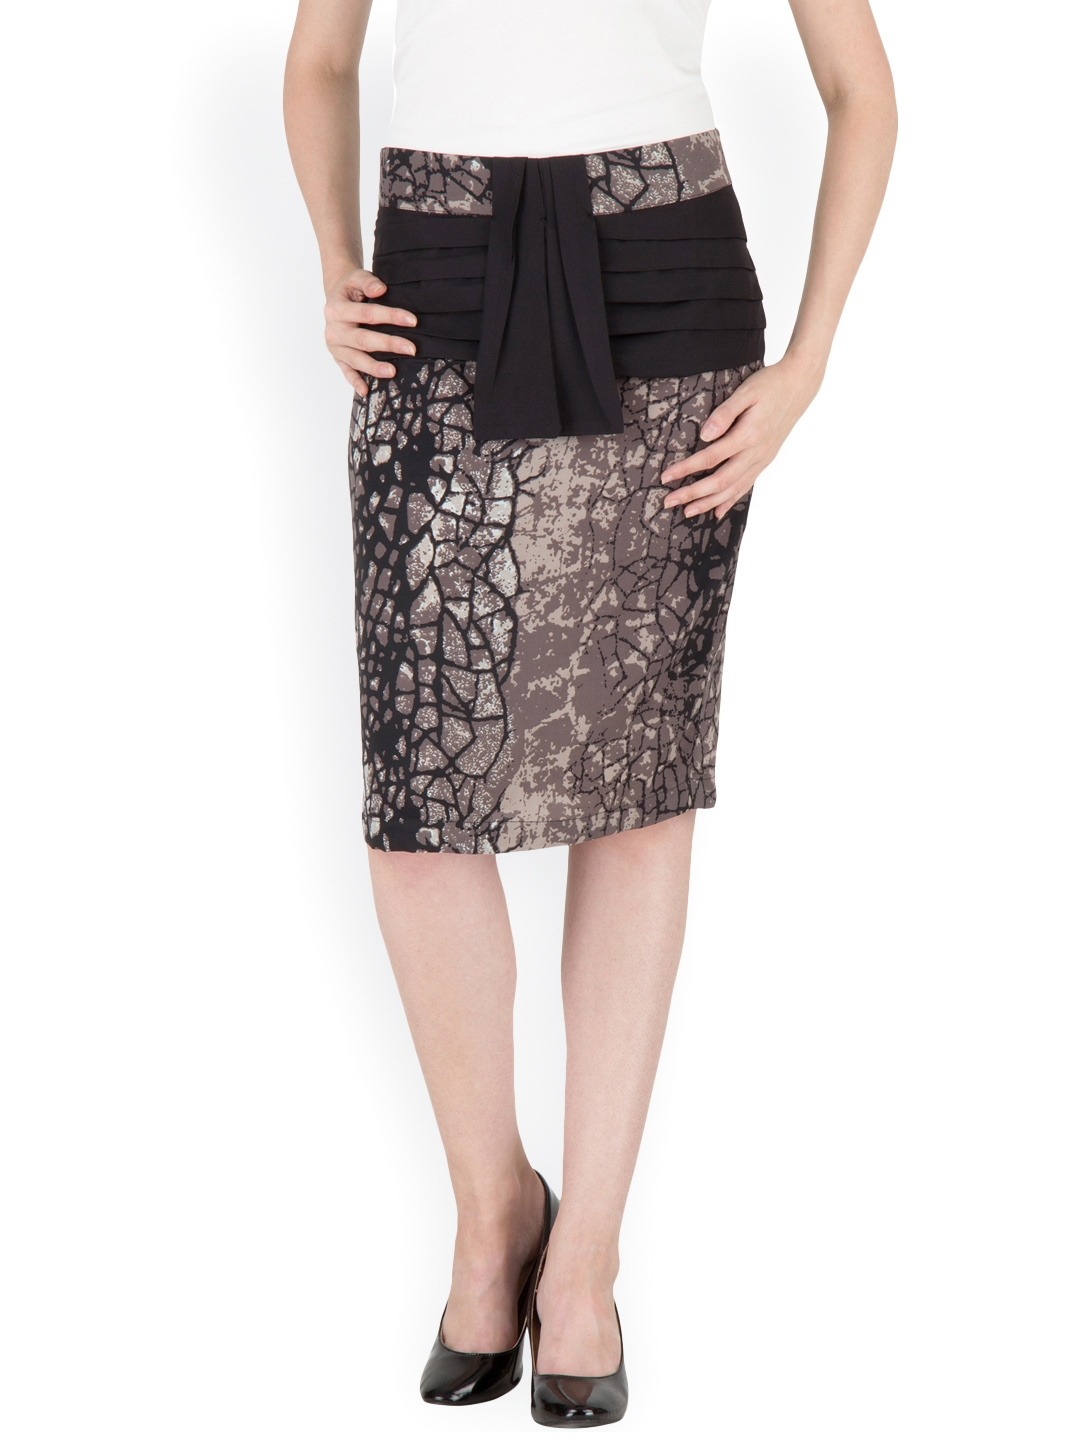 Shop the latest trends in women's skirts at Express! For an outfit that is perfect for any event, shop our variety of party, casual and wear to work skirts Skirts - Pencil Skirts, Going Out & Casual.